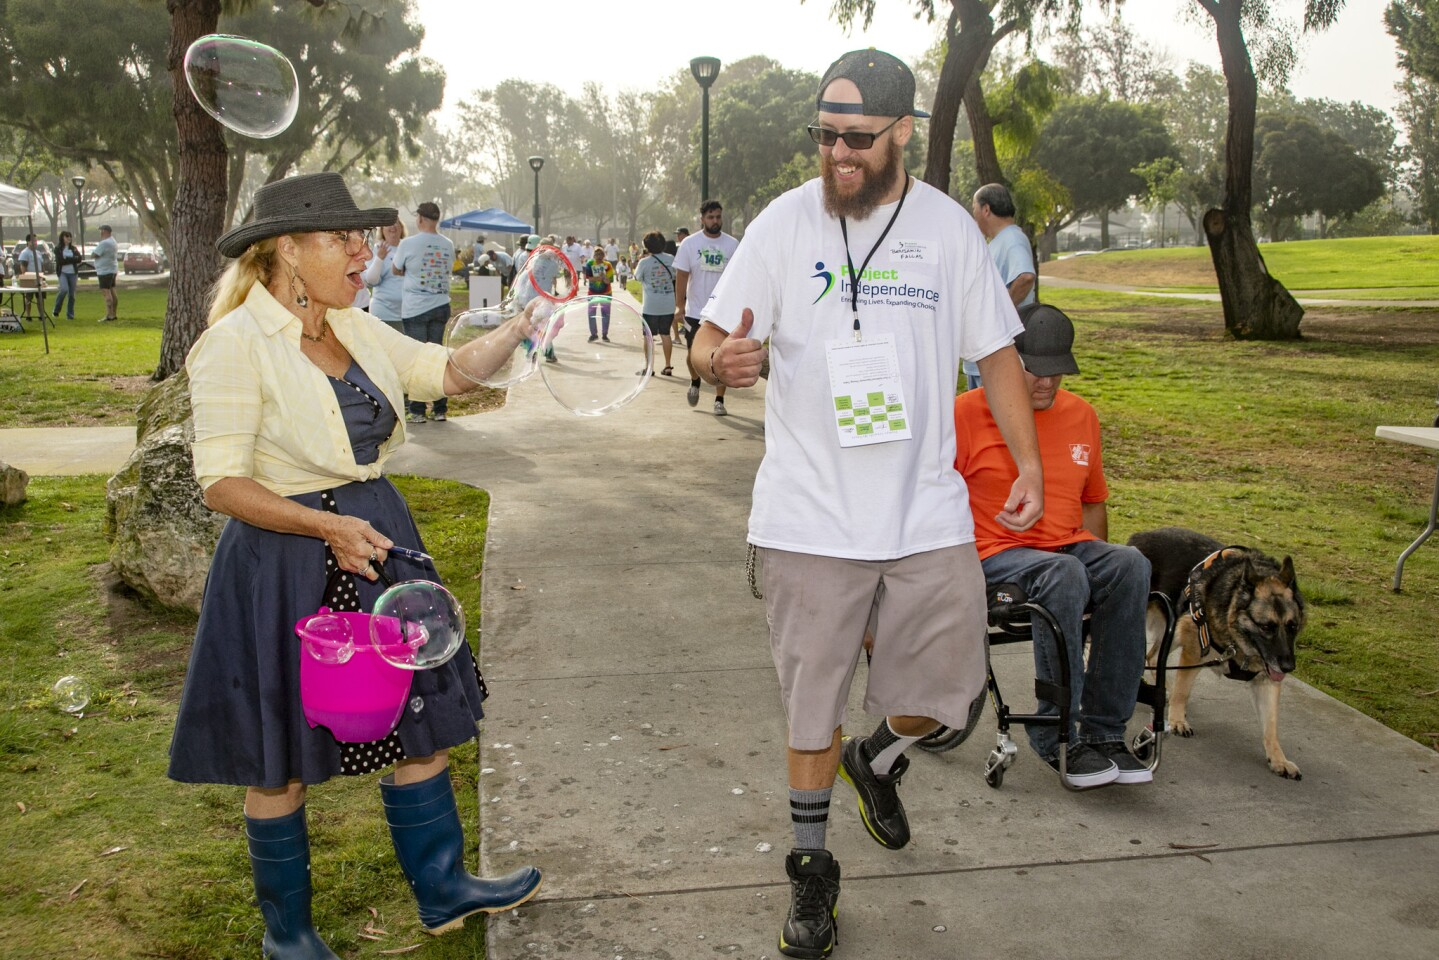 Ben Fallas gets a bubbly reception from Ellyn Hale as he participates in Saturday's Walk for Independence presented by Project Independence, a Costa Mesa-based nonprofit that supports people with developmental disabilities.